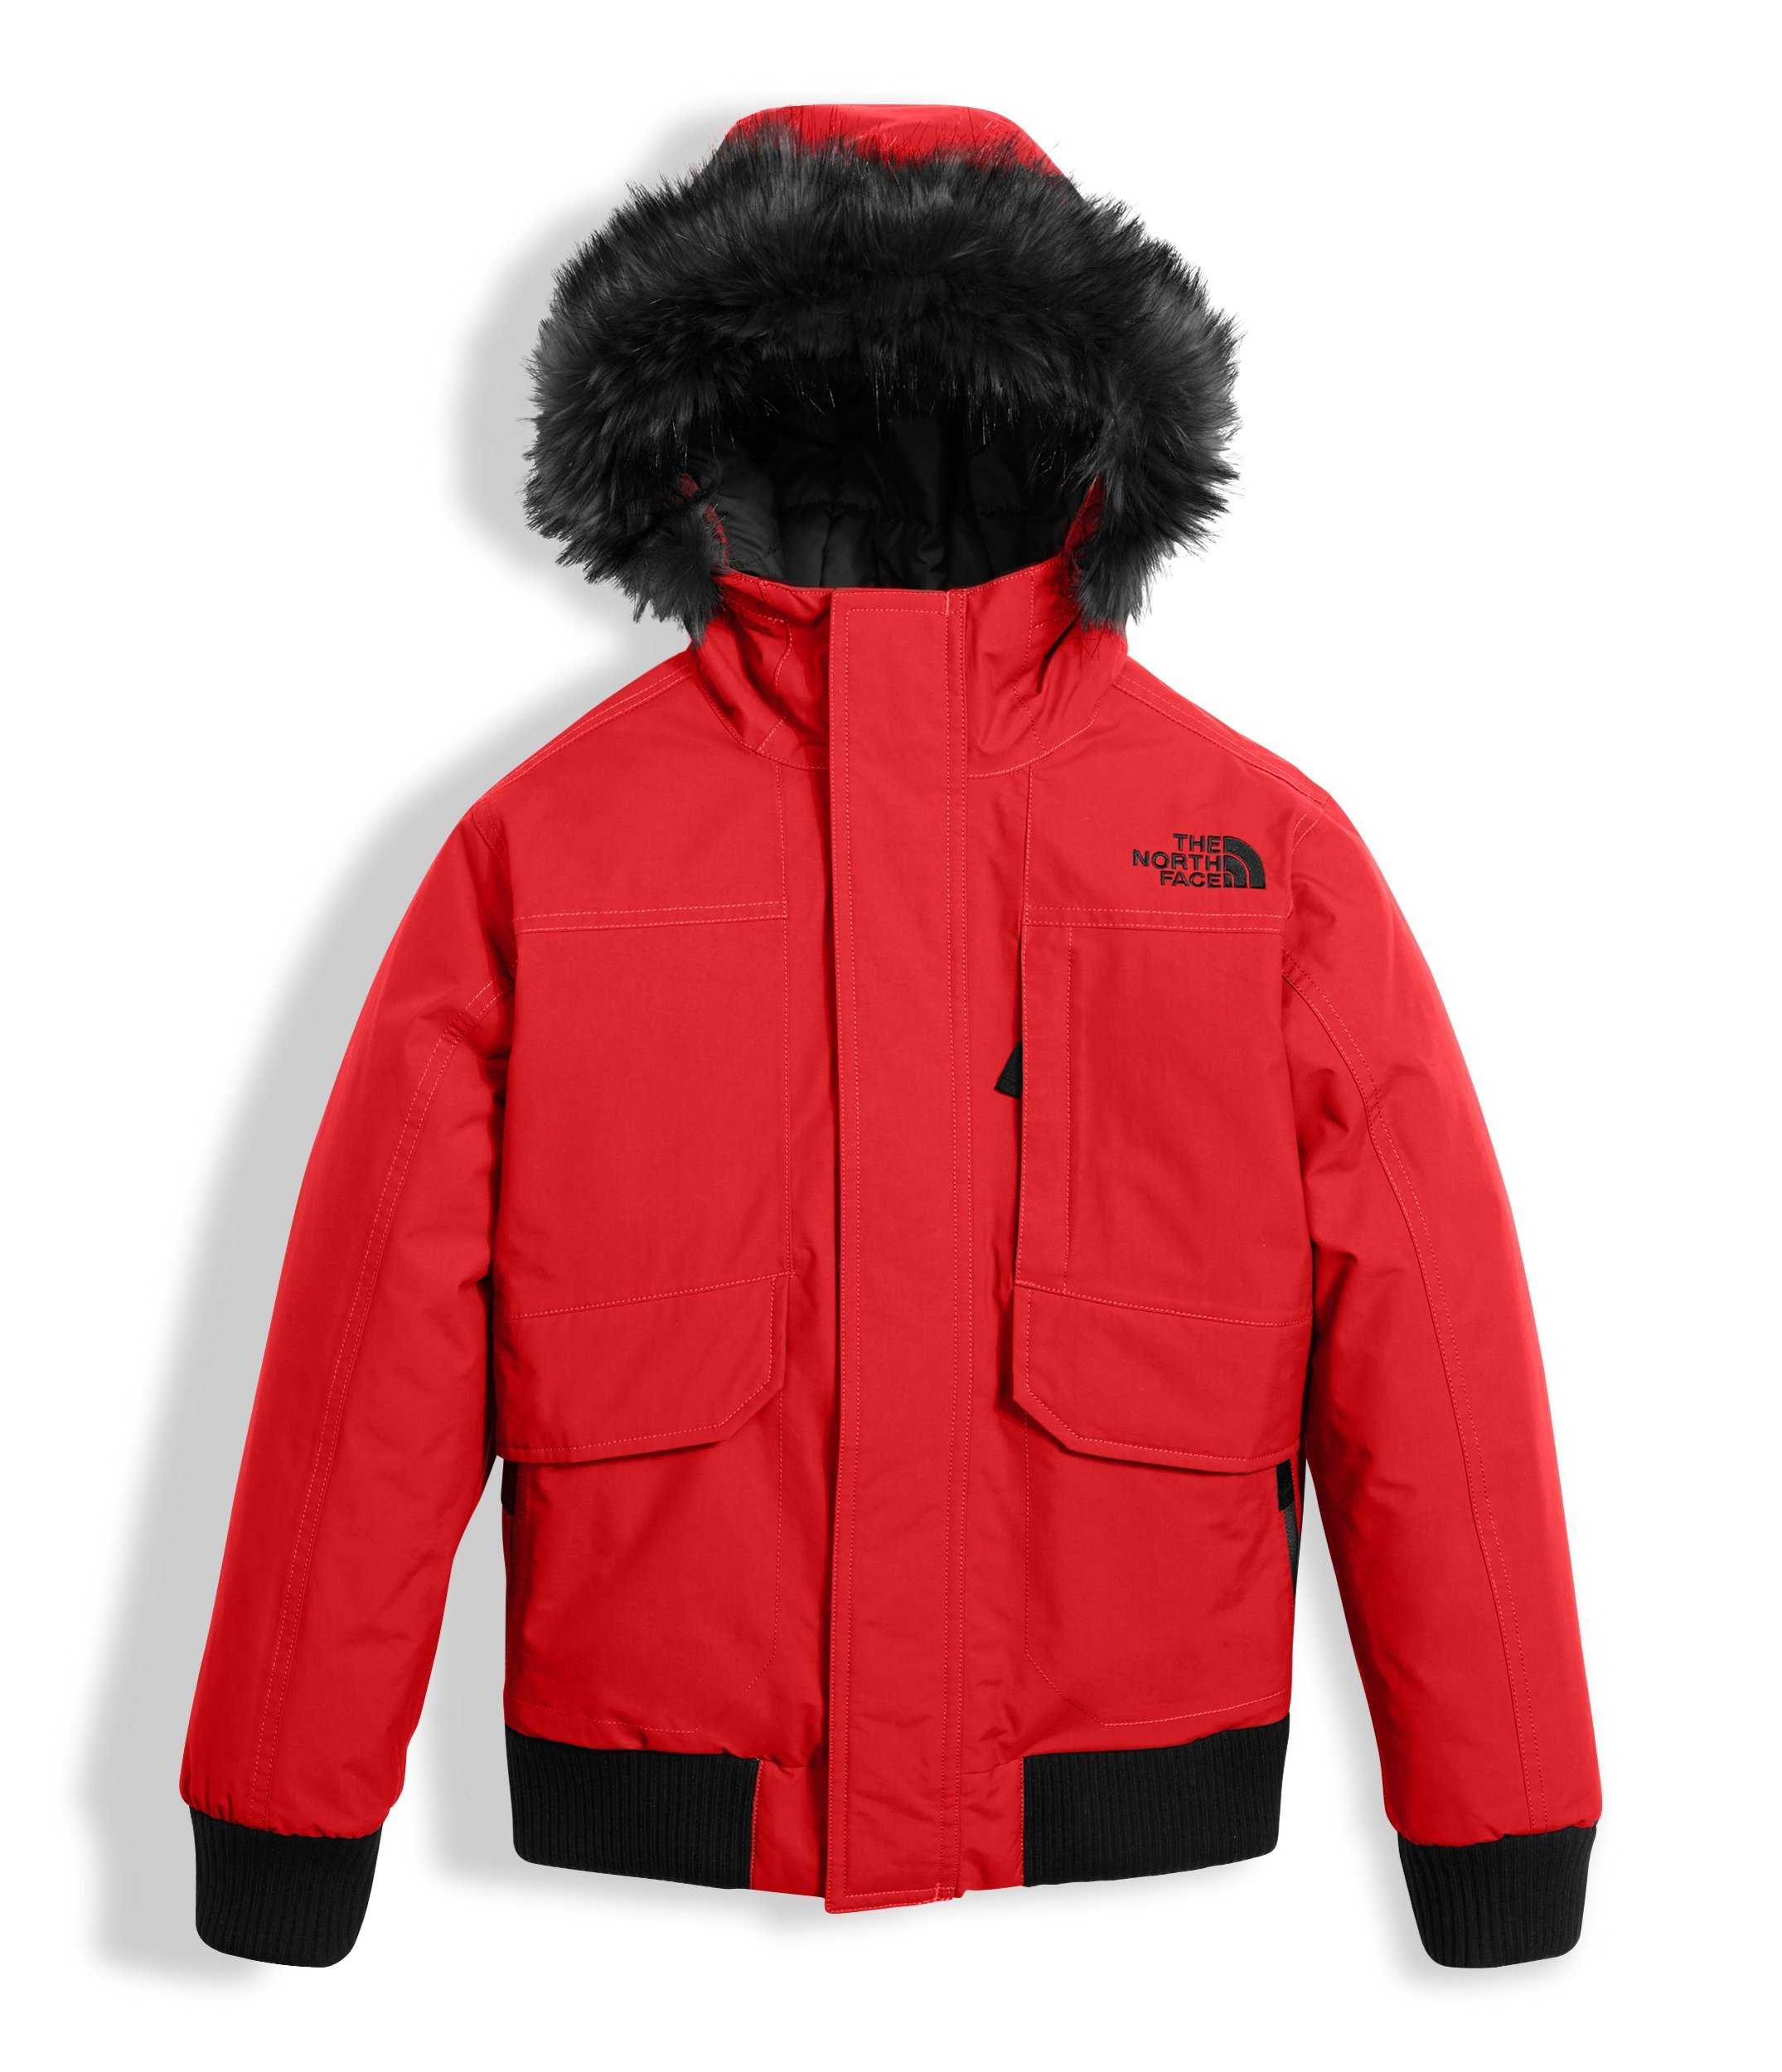 The North Face Boy's Gotham Down Jacket - Red - S (Past Season)